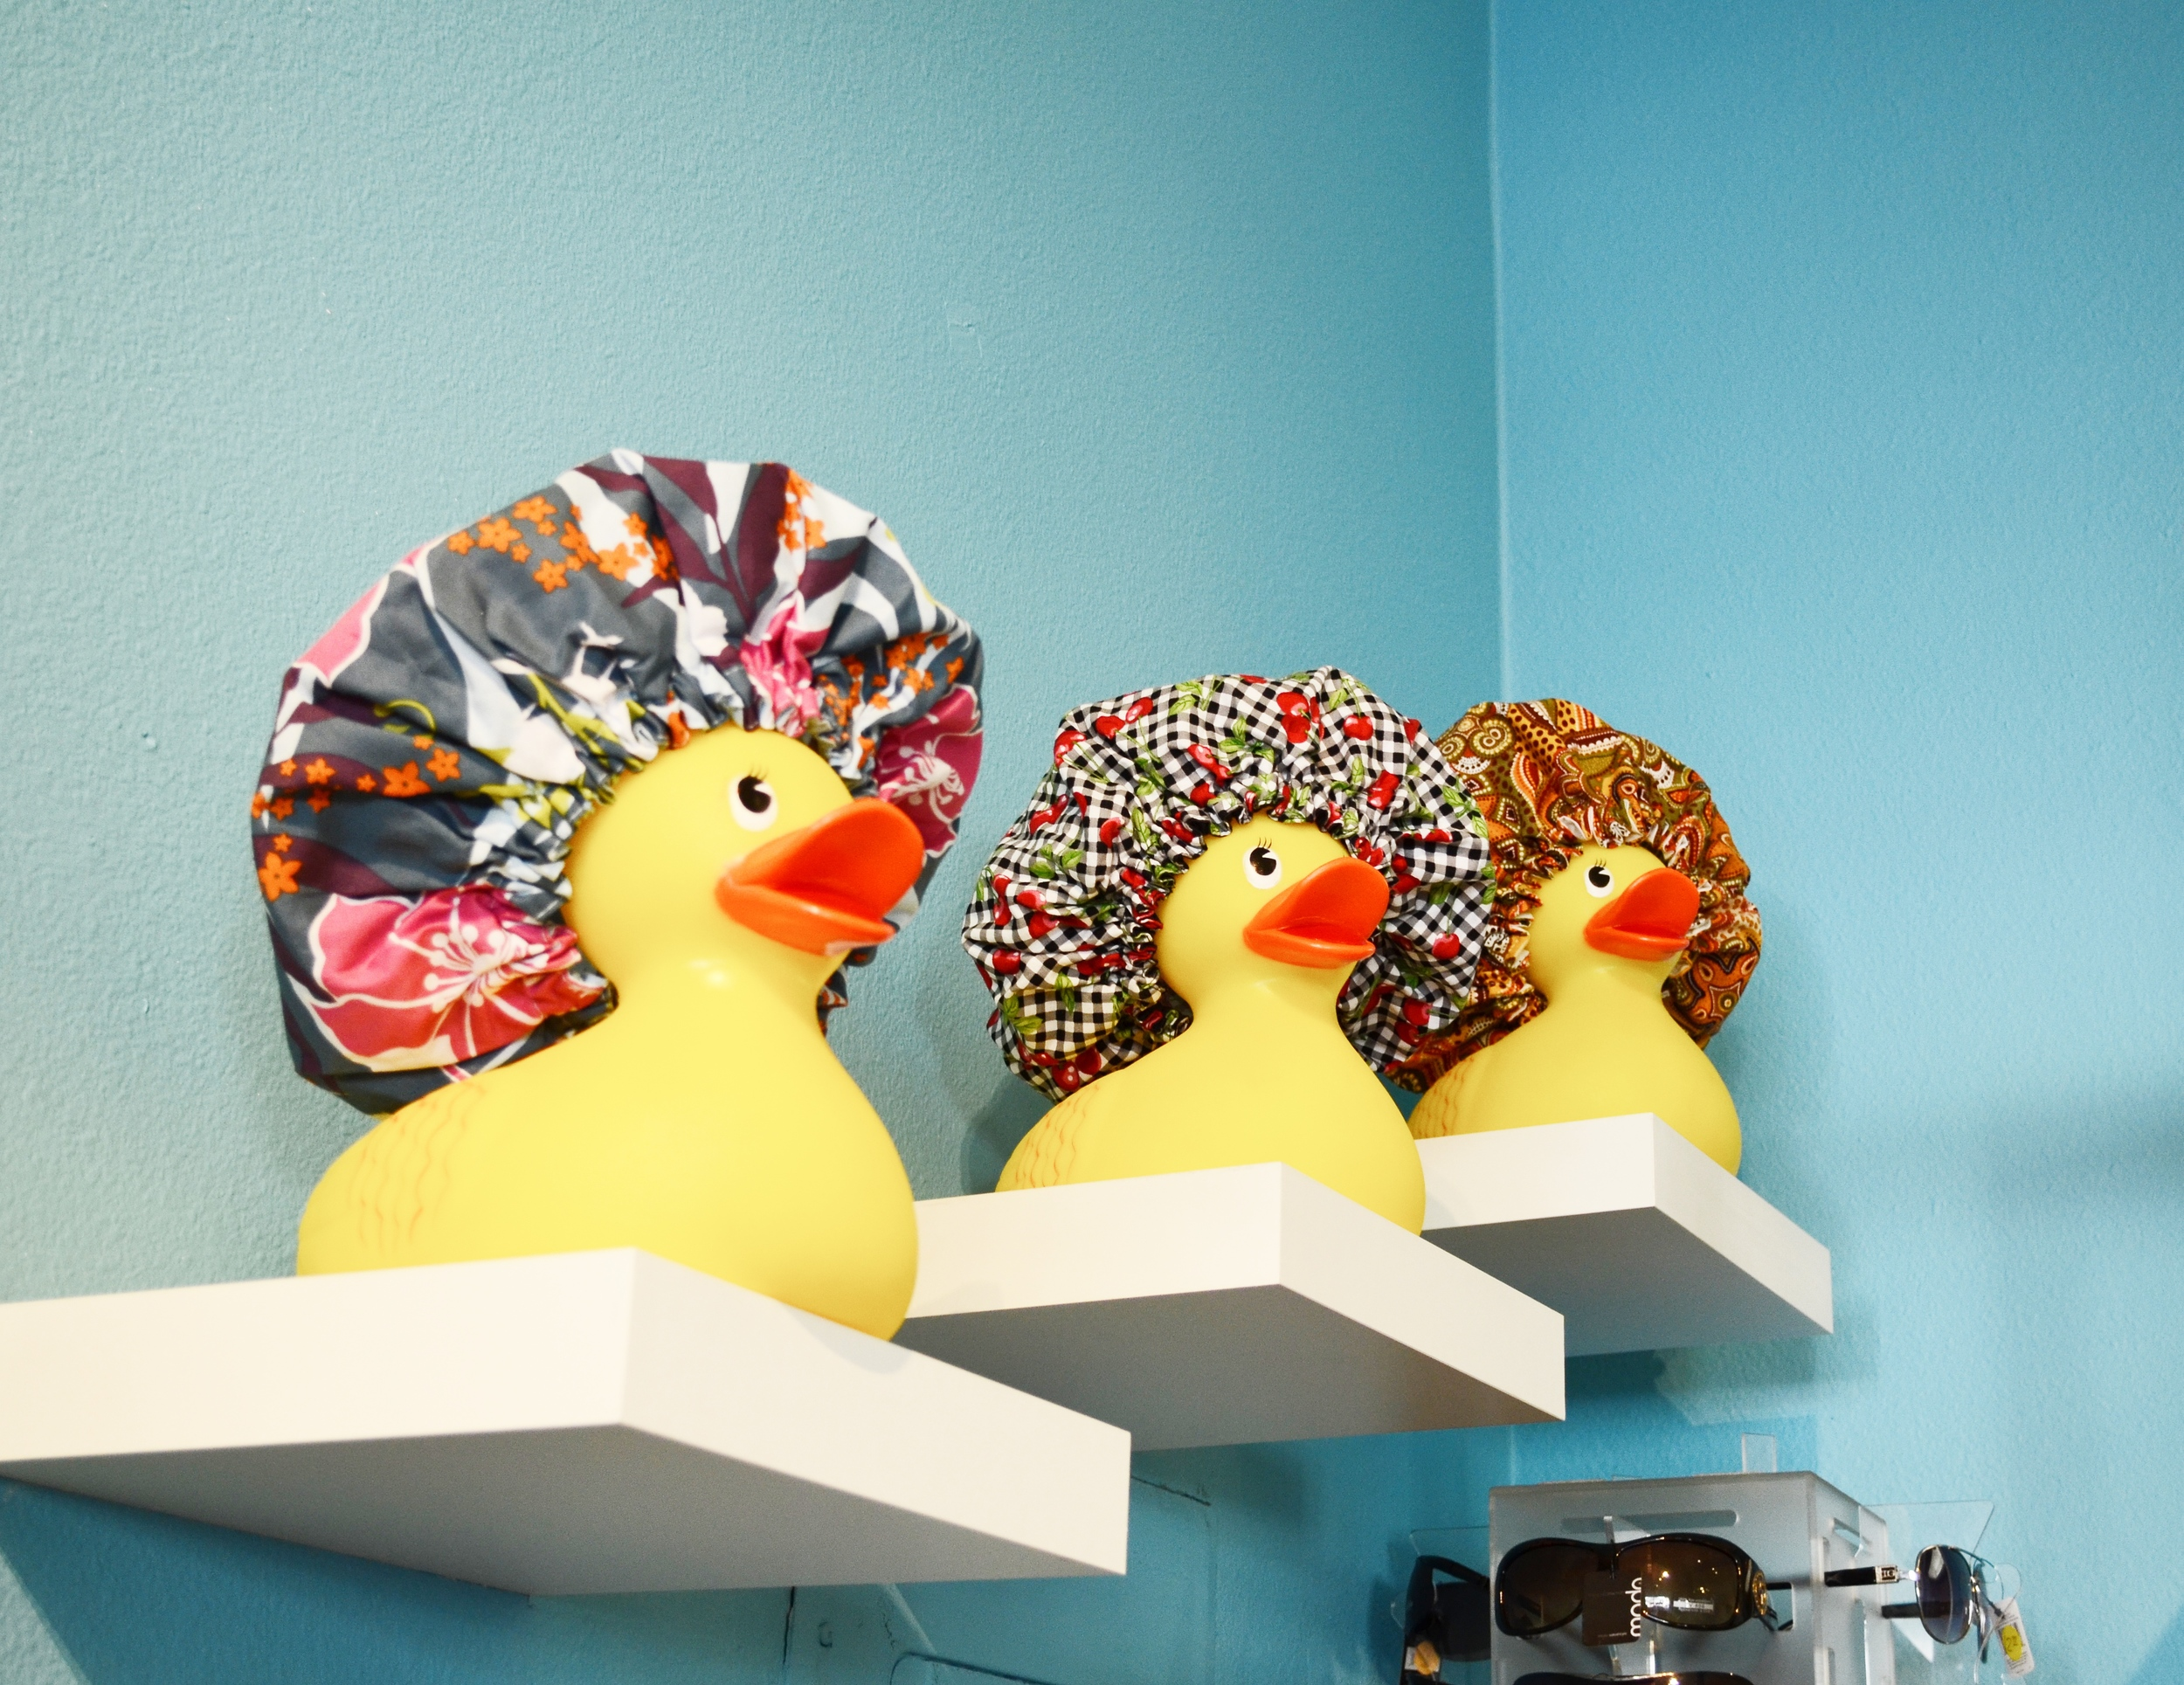 The cutest giant rubber duck display!